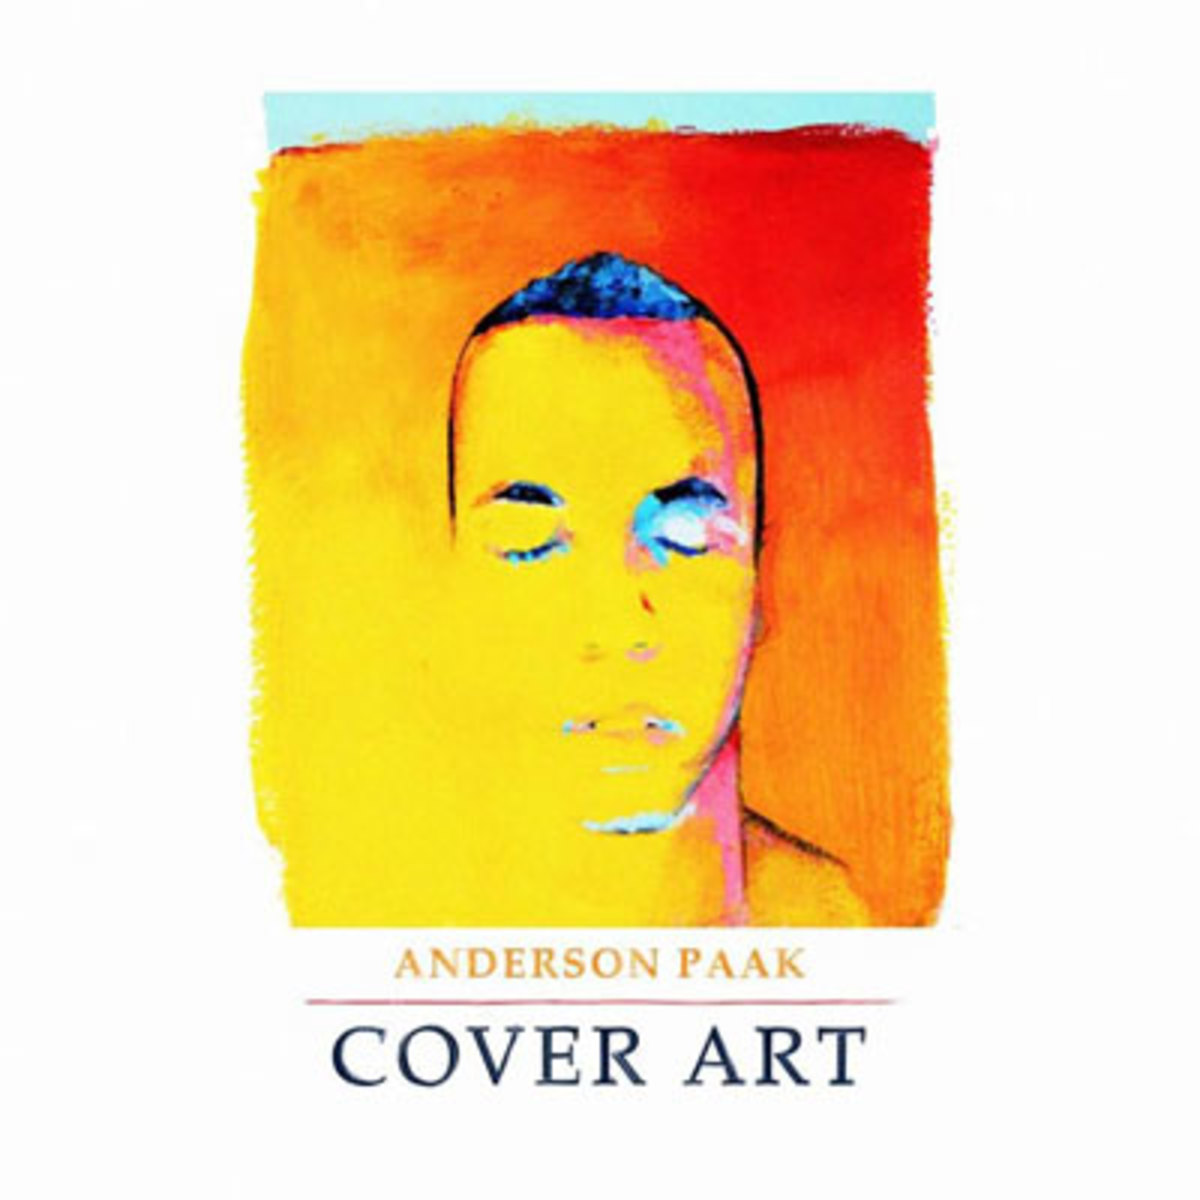 andersonpaak-coverart.jpg